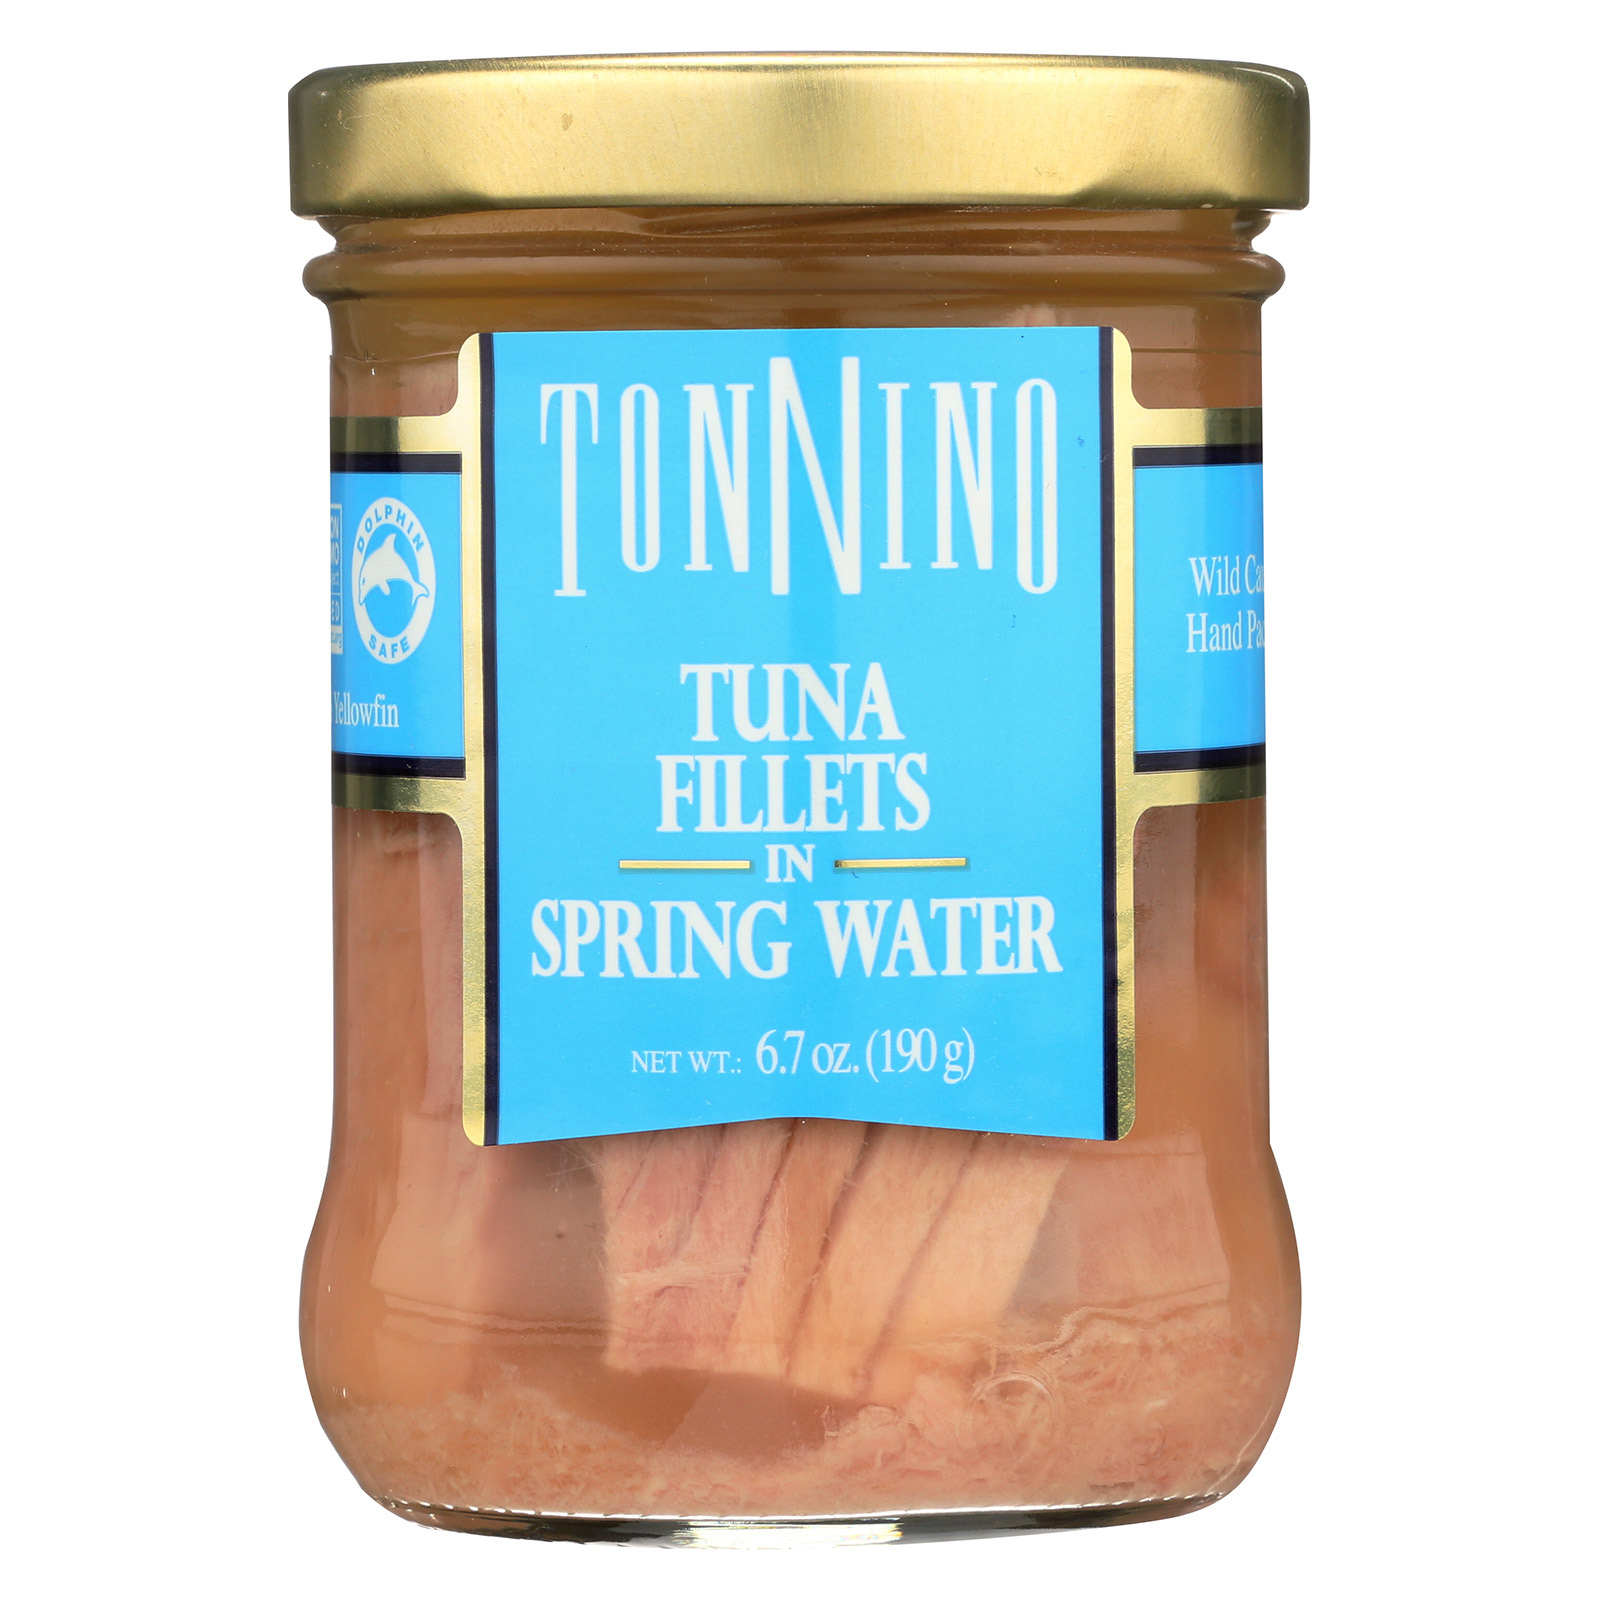 Tonnino Tuna Fillets - Spring Water - Case of 6 - 6.7 oz.